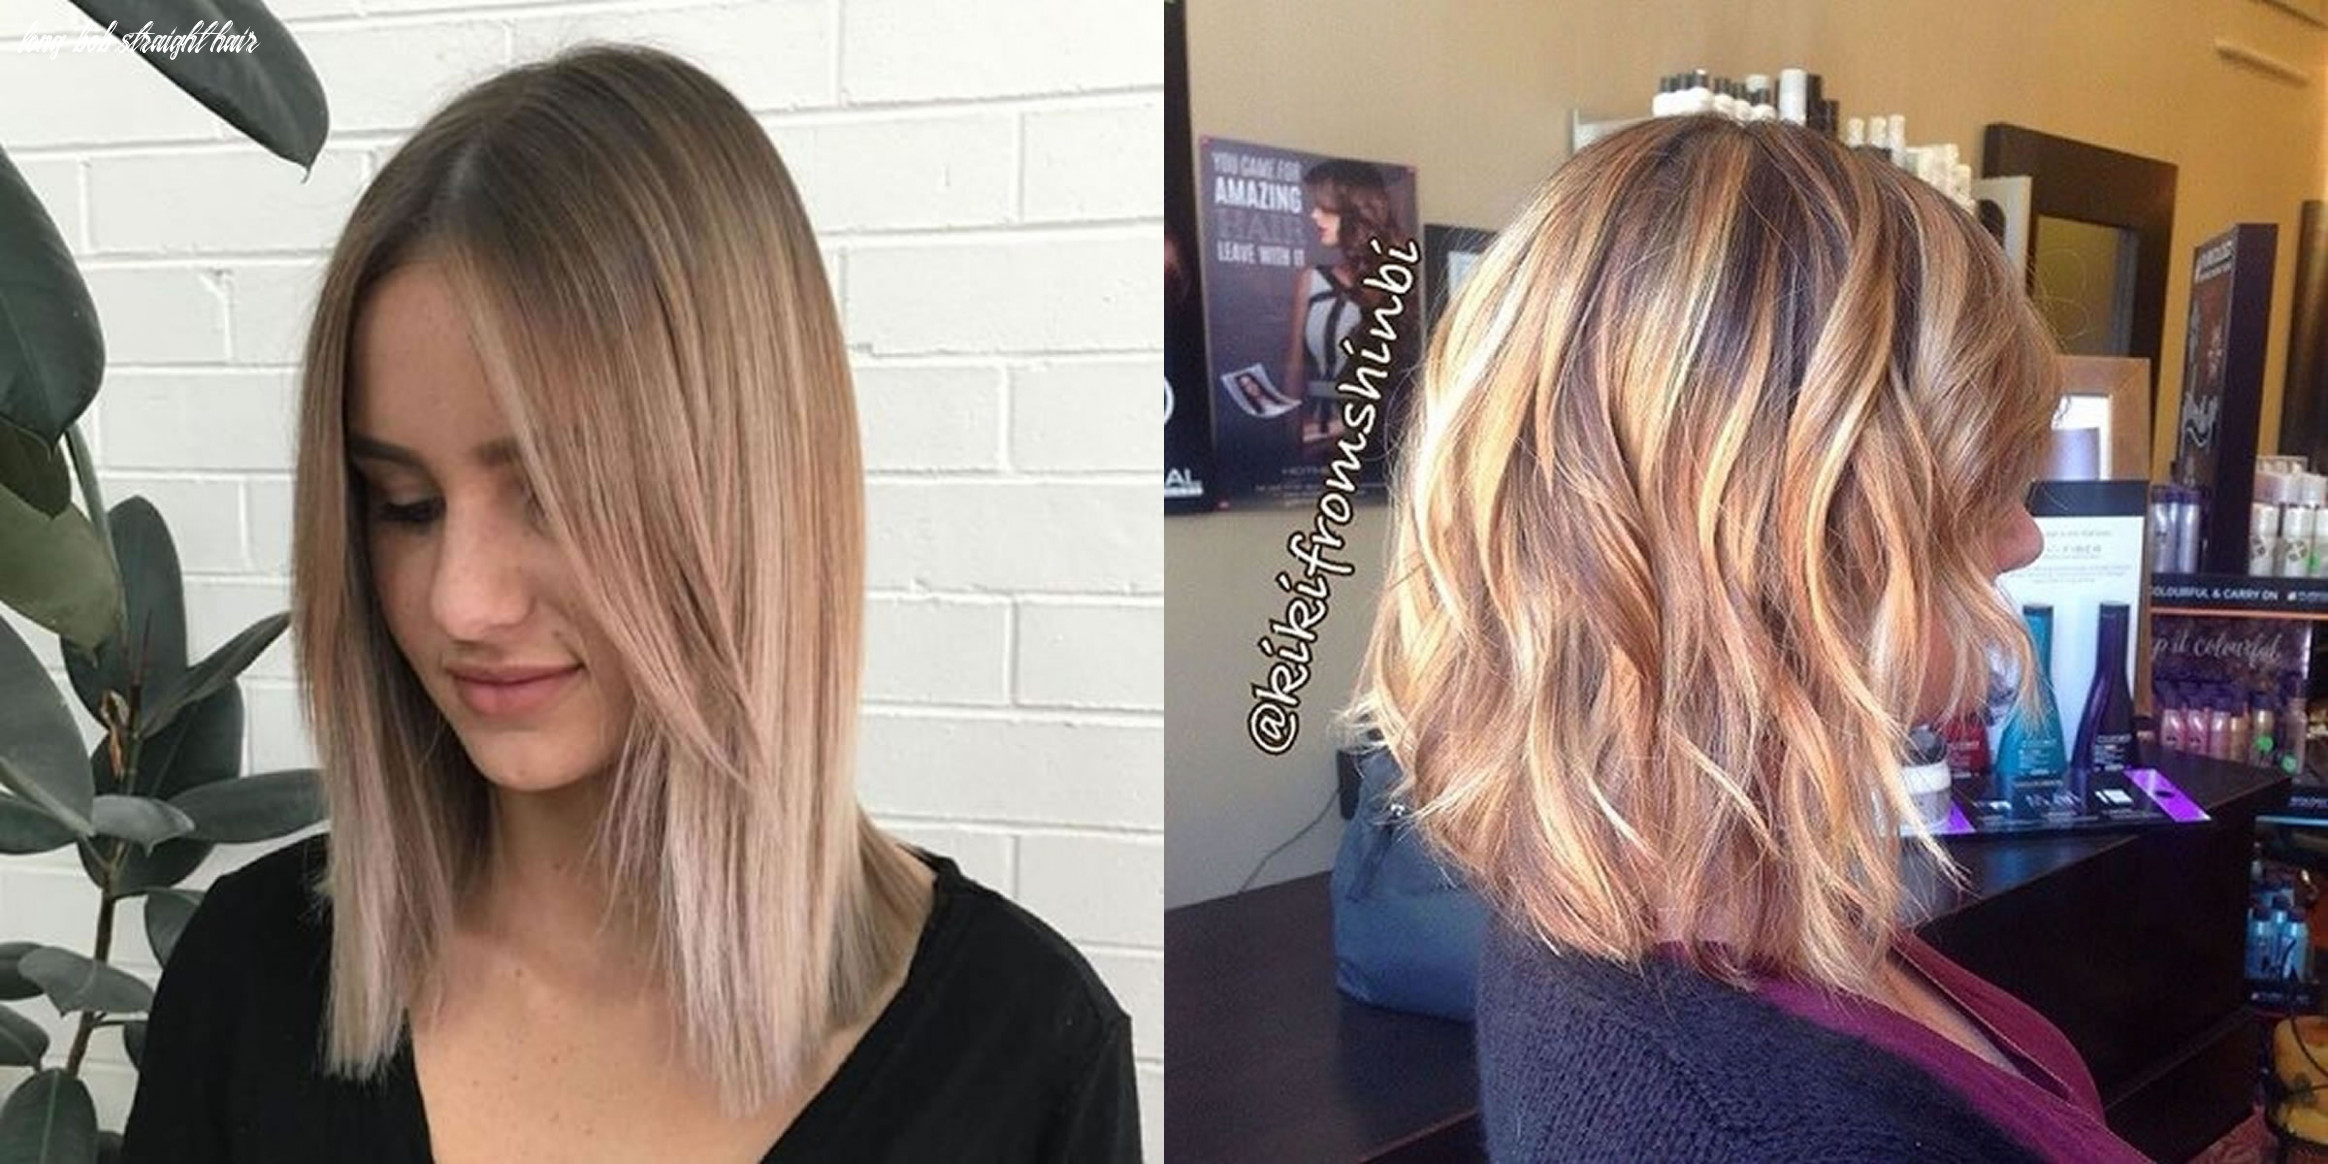 Straight hair style center parted long bob hairstyle - Hair Colors